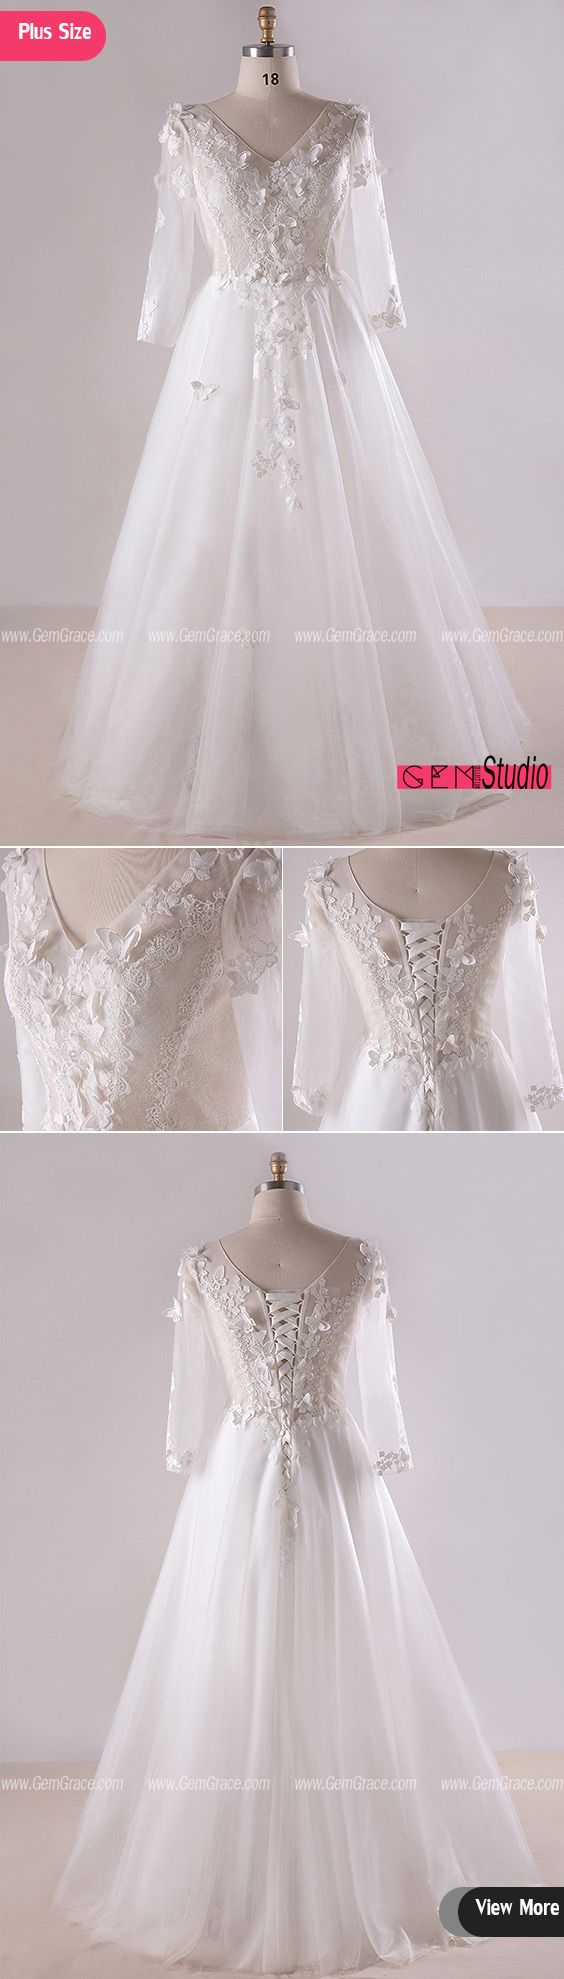 3 4 sleeve lace wedding dress  Gorgeous Plus Size White Butterflies Long Tulle Wedding Dress With